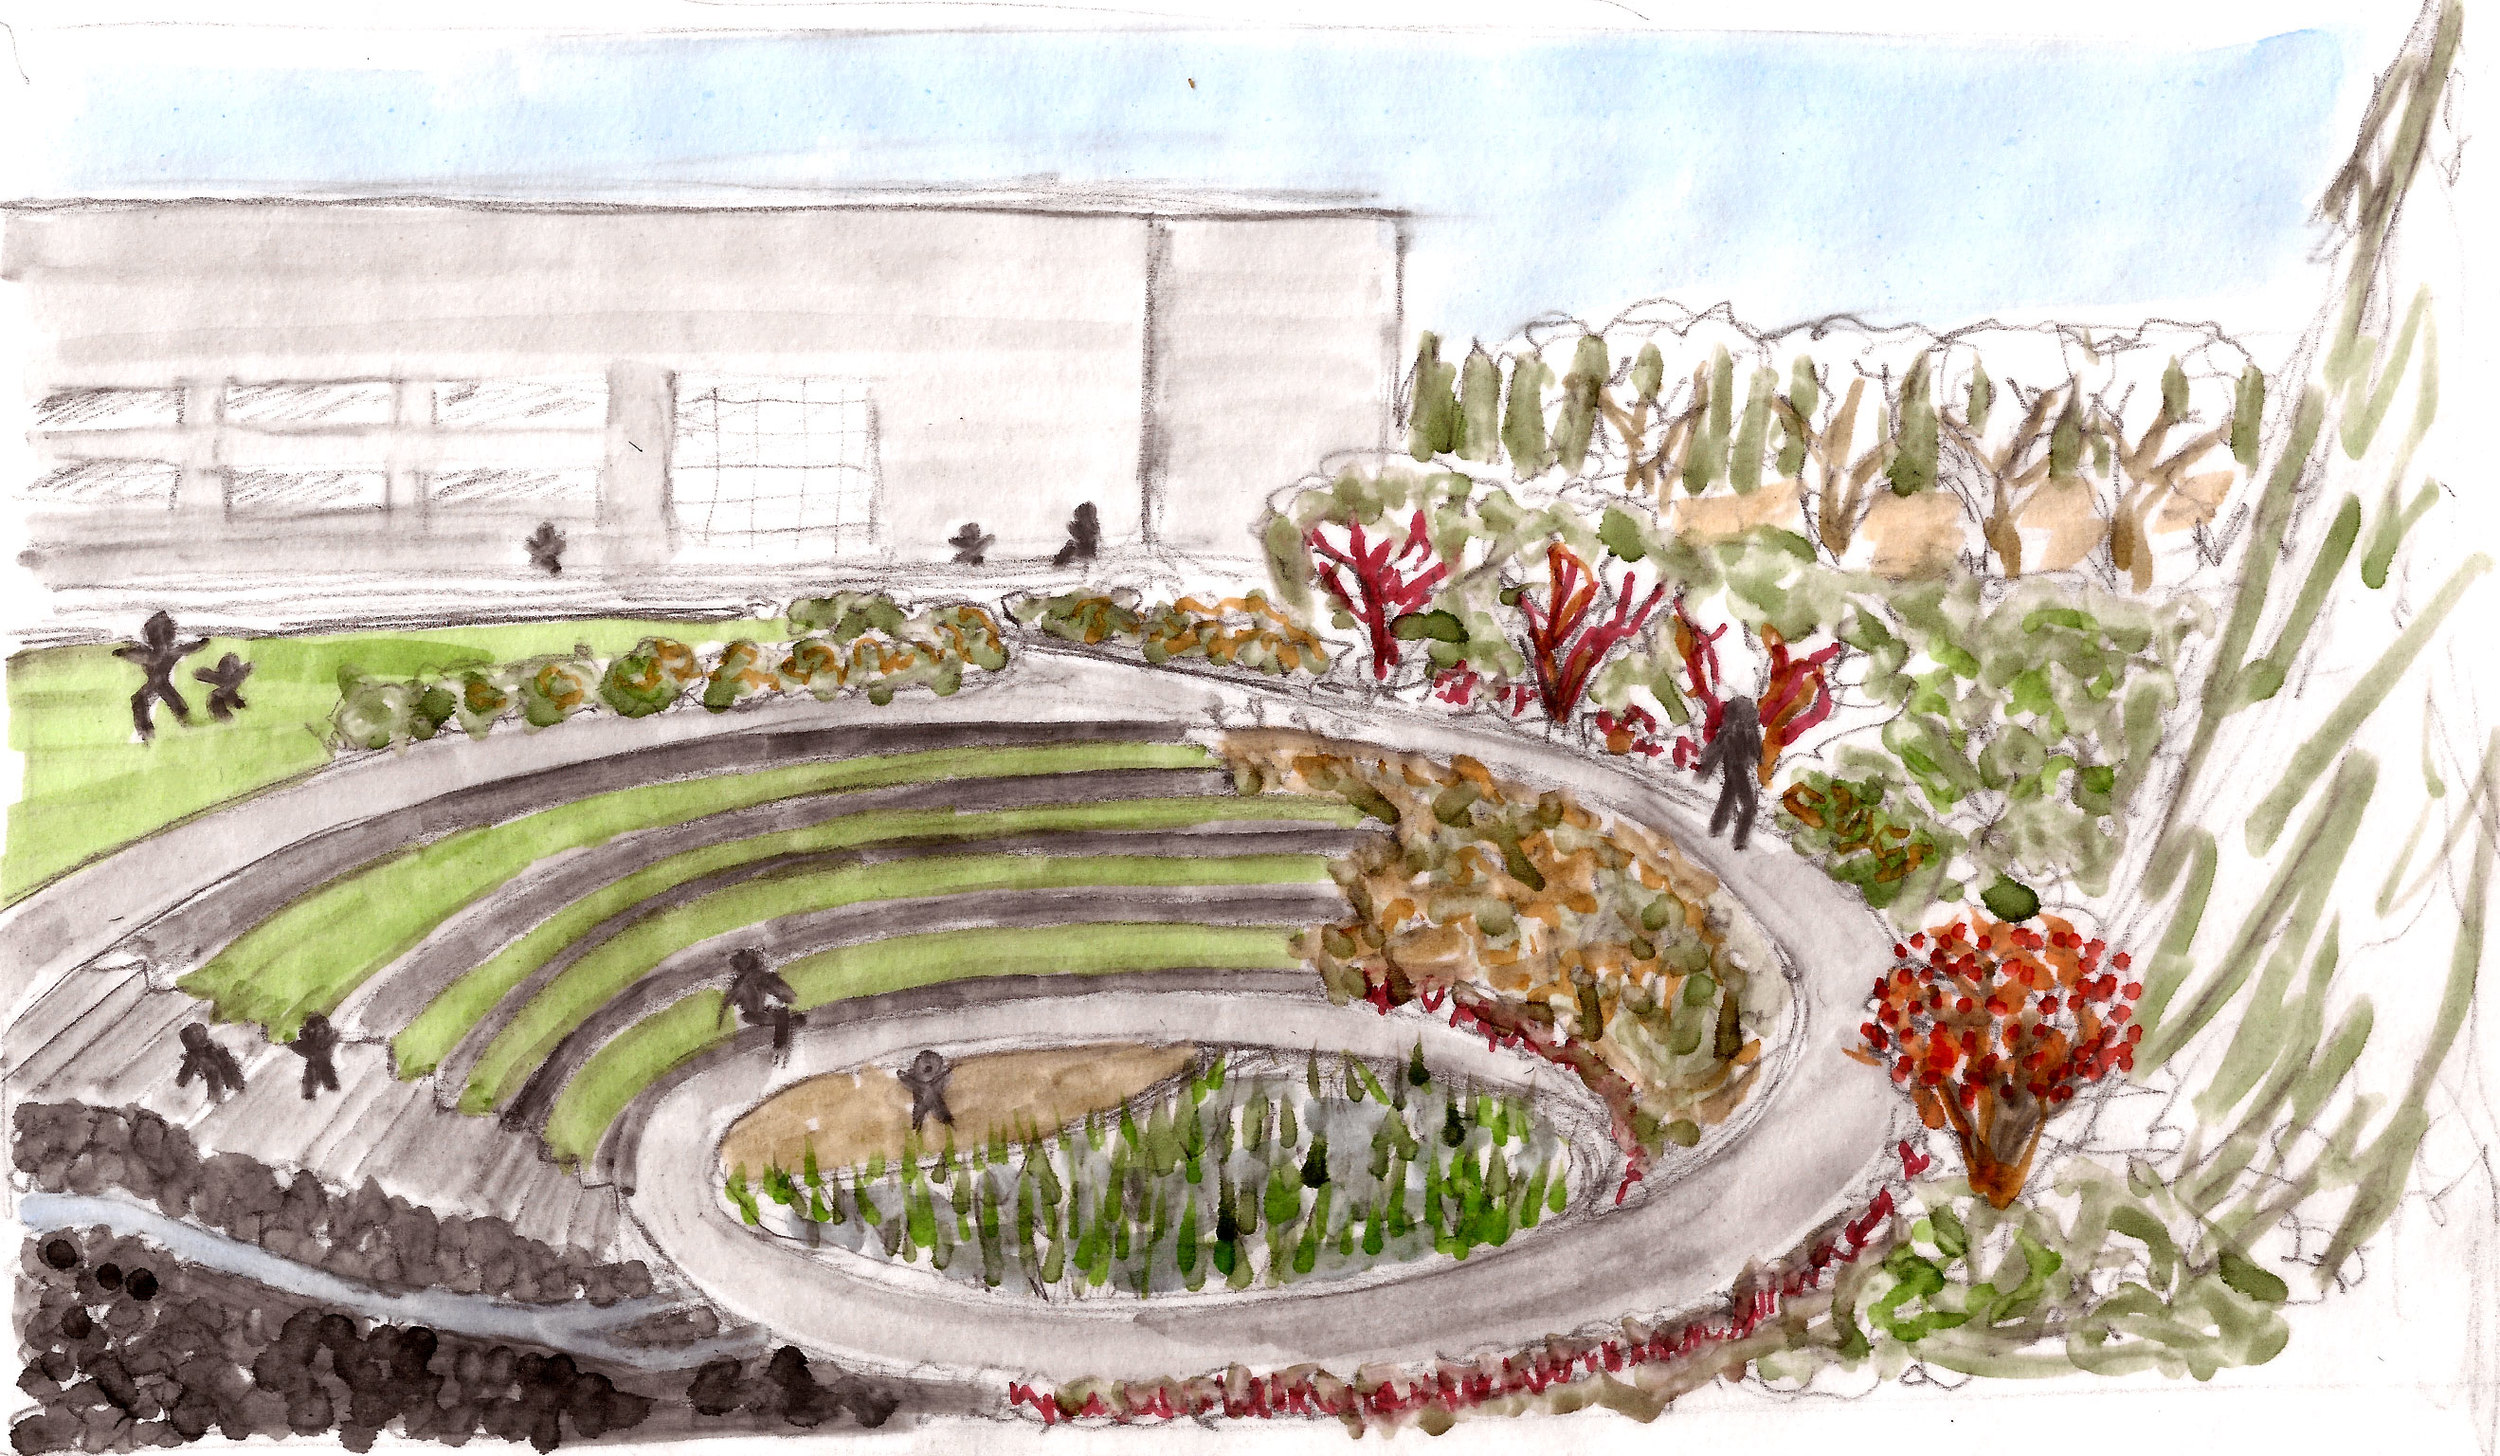 view of amphitheater and stormwater retention pond in winter